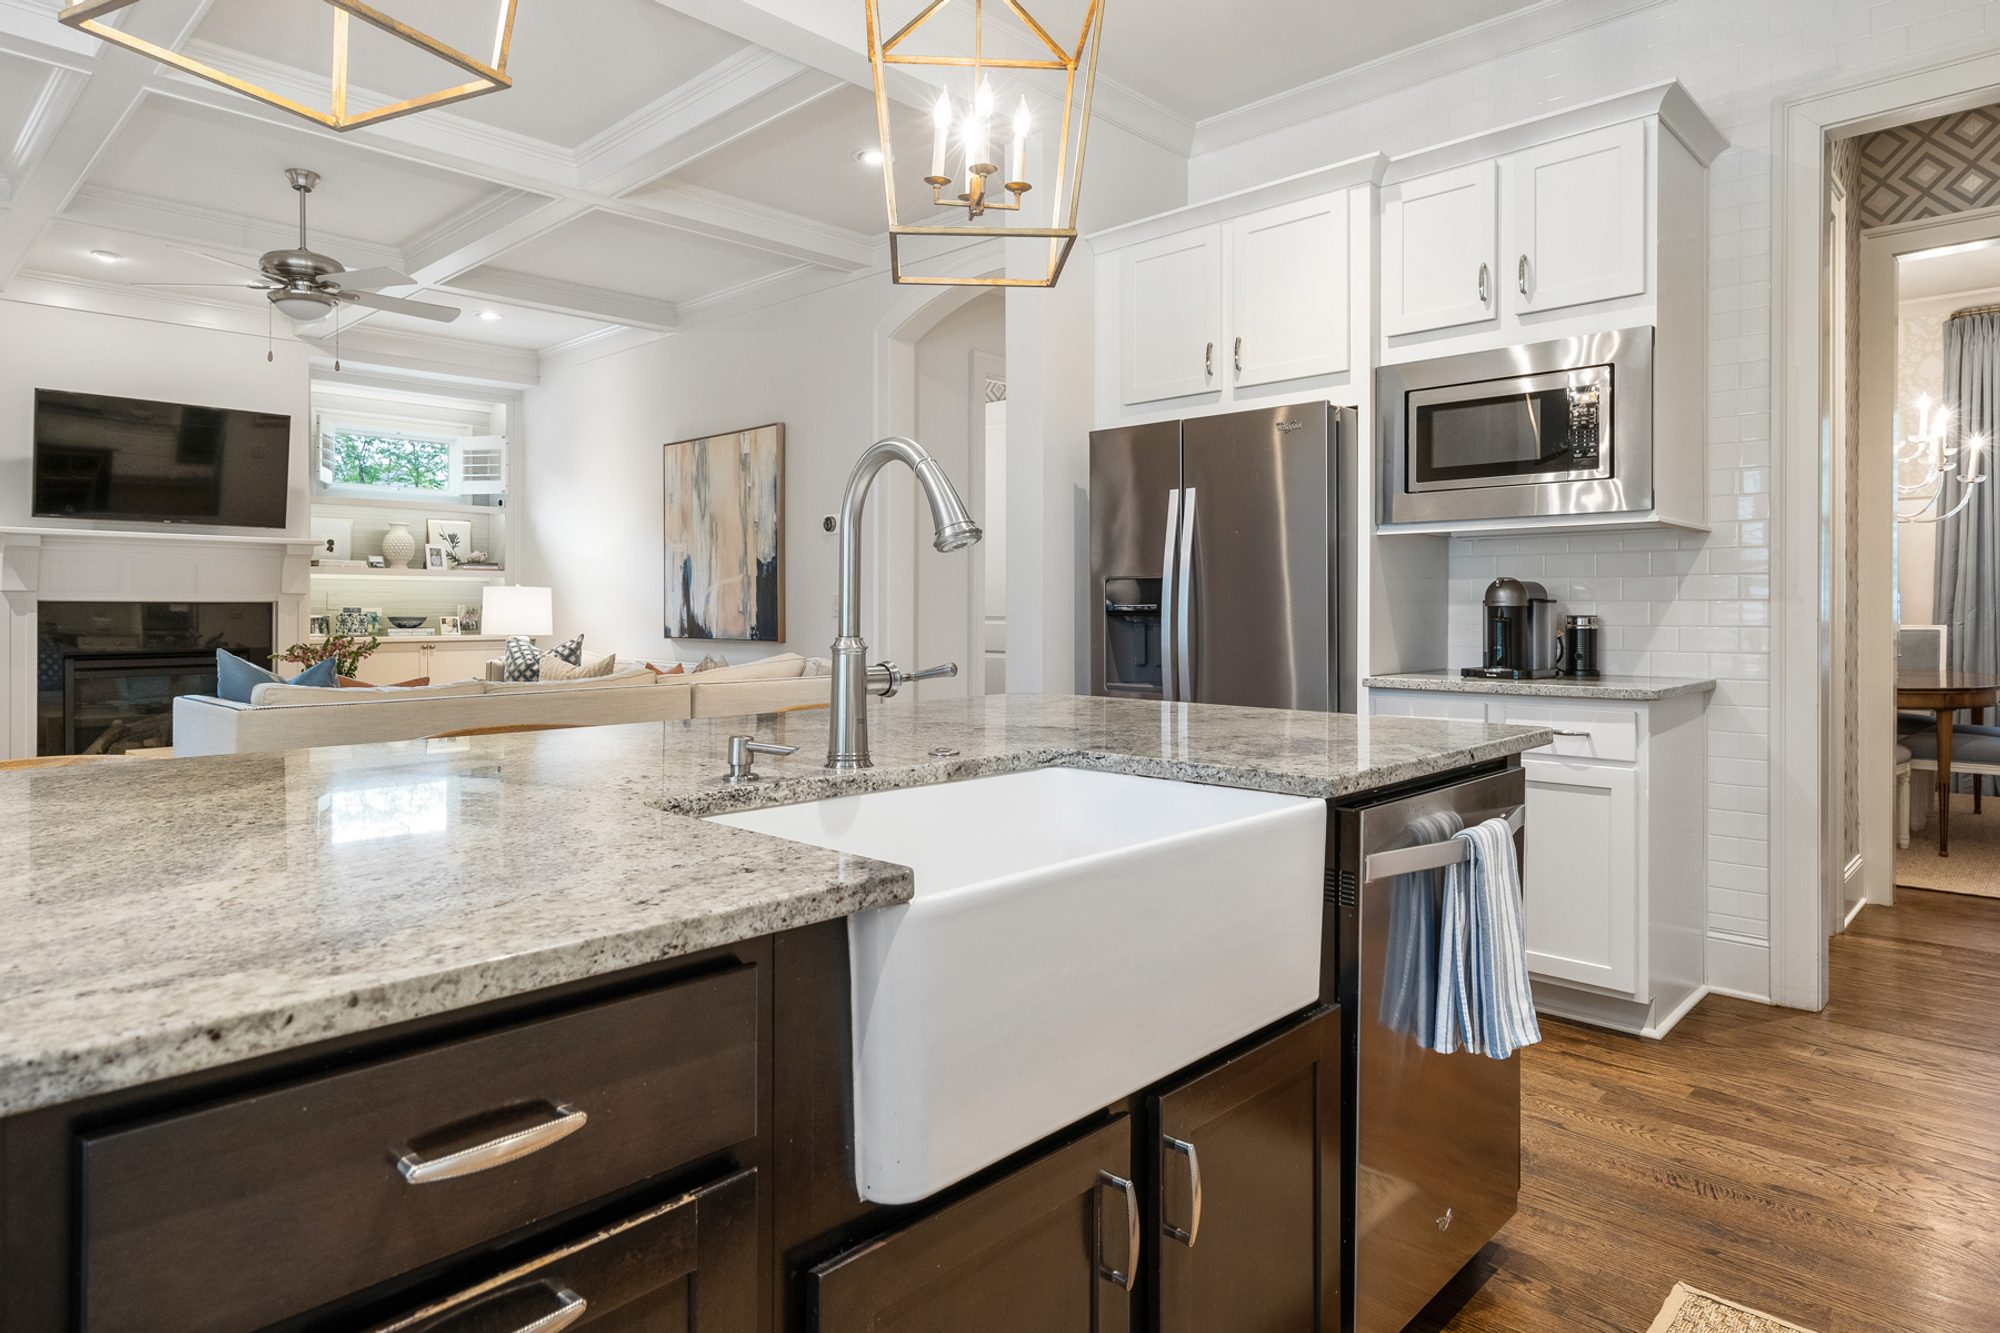 black island cabinets with a large white farmhouse sink and granite countertops